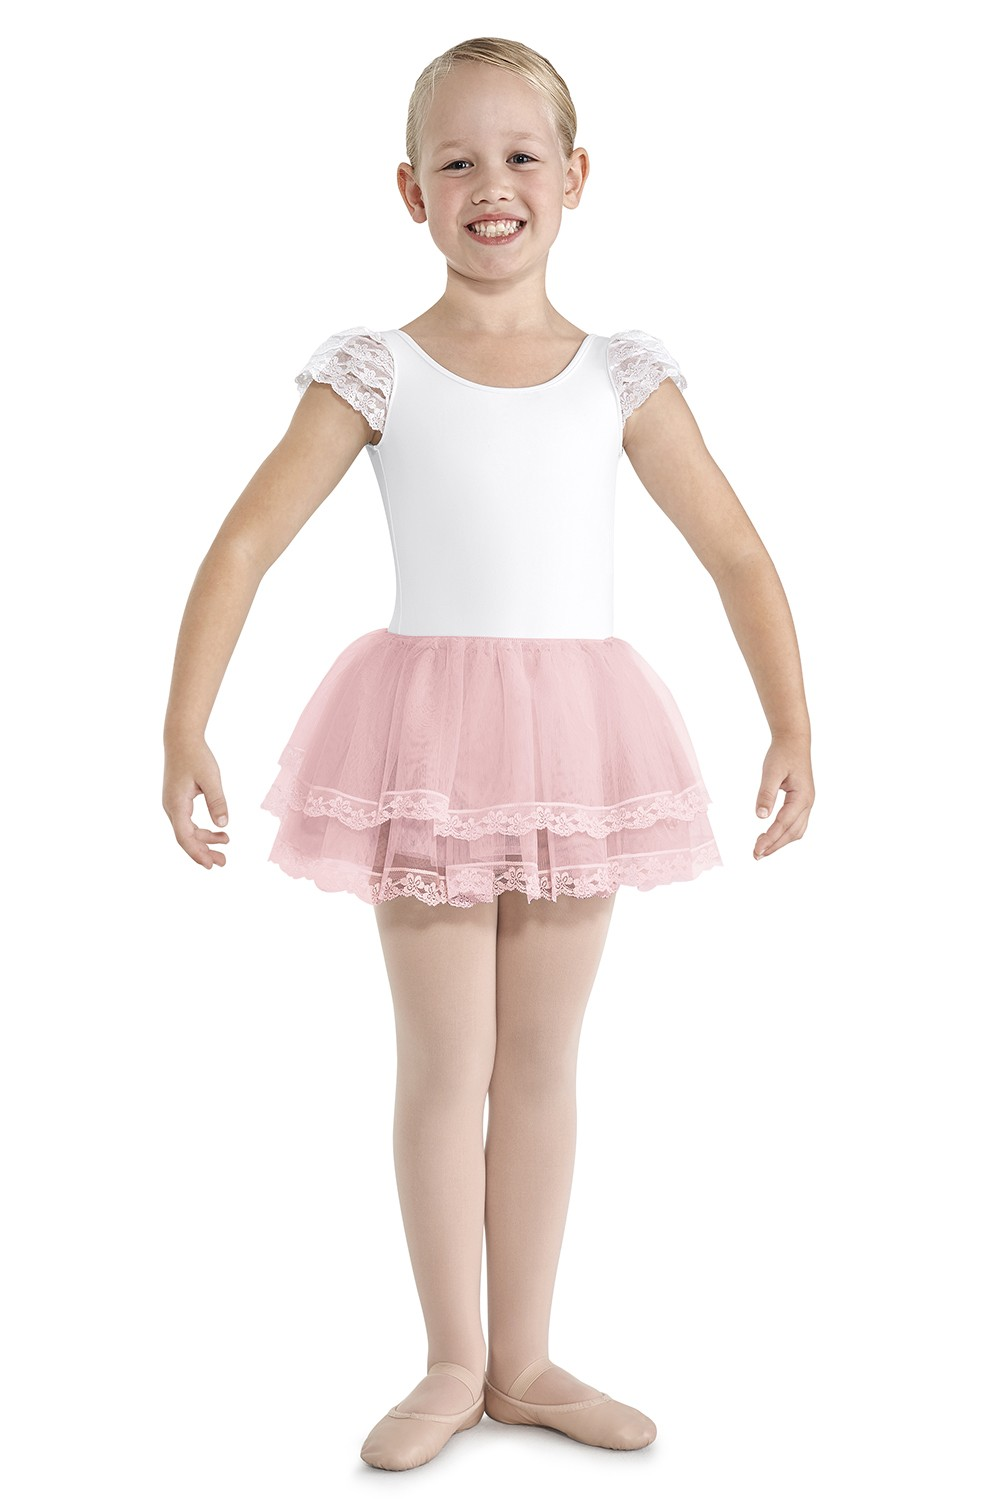 Vaarida Children's Dance Skirts